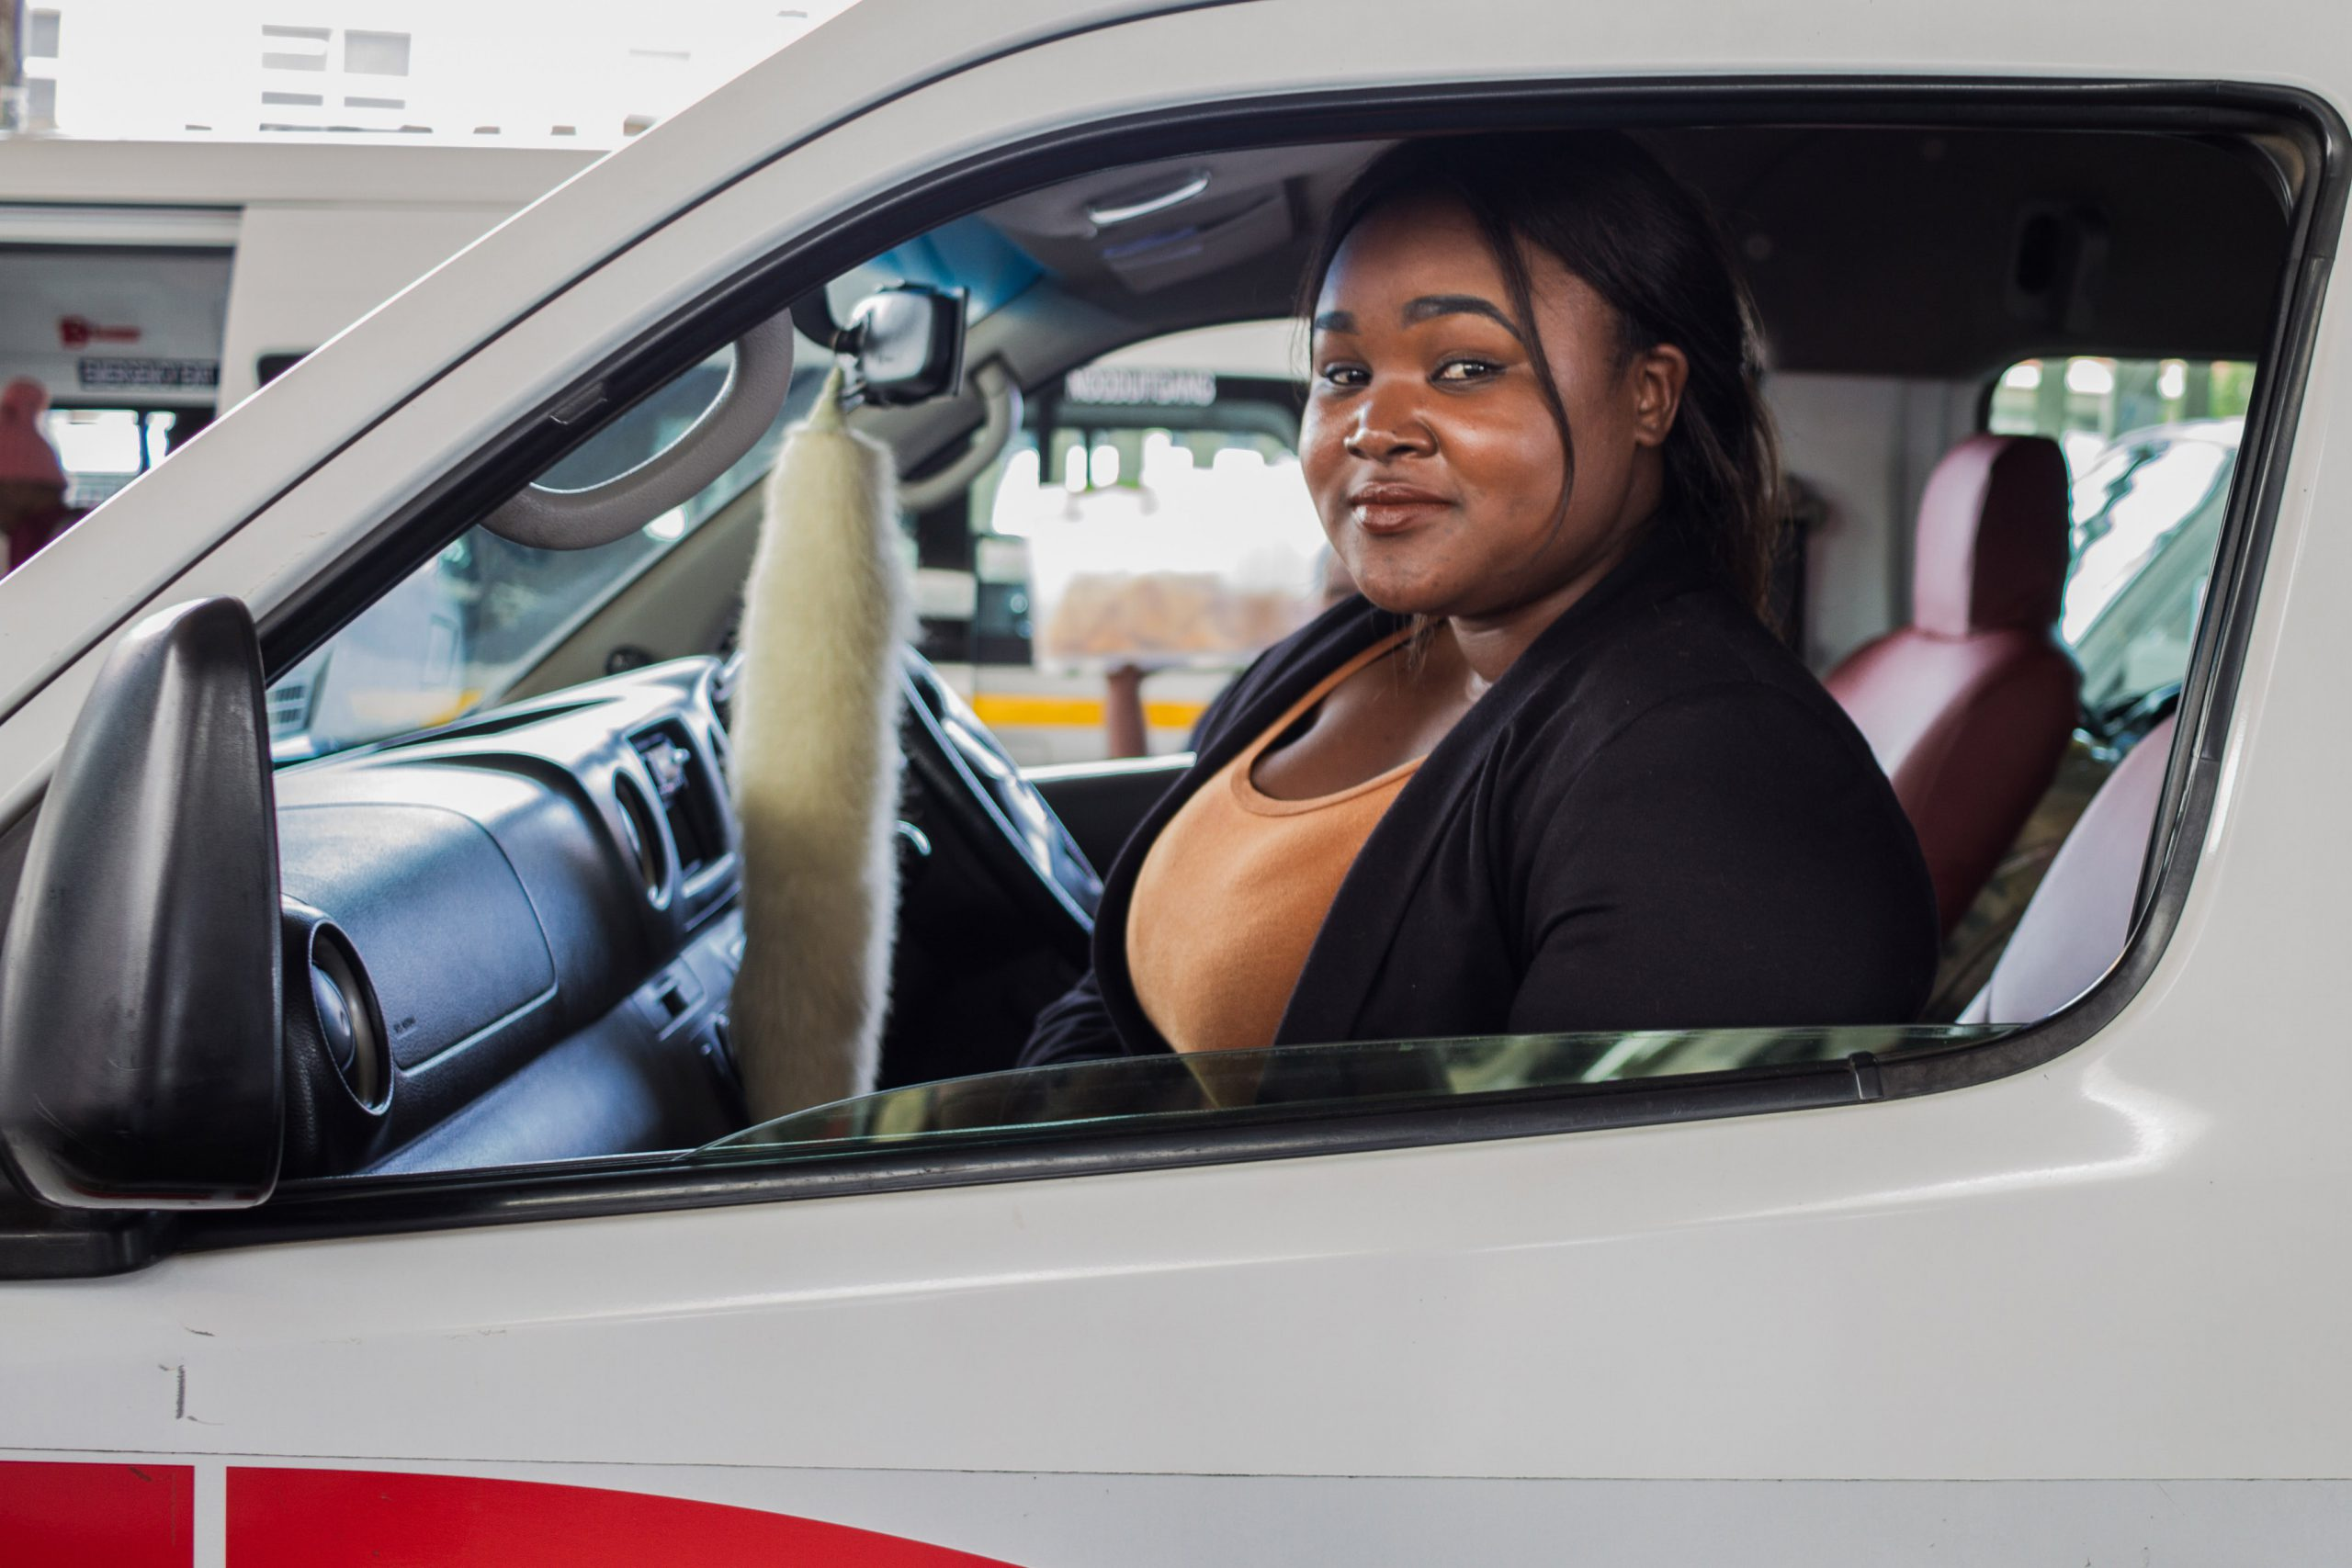 18 November 2019 : Ayanda Radebe, a student from eMolweni, south of Durban, relies on taxis for her daily commute.